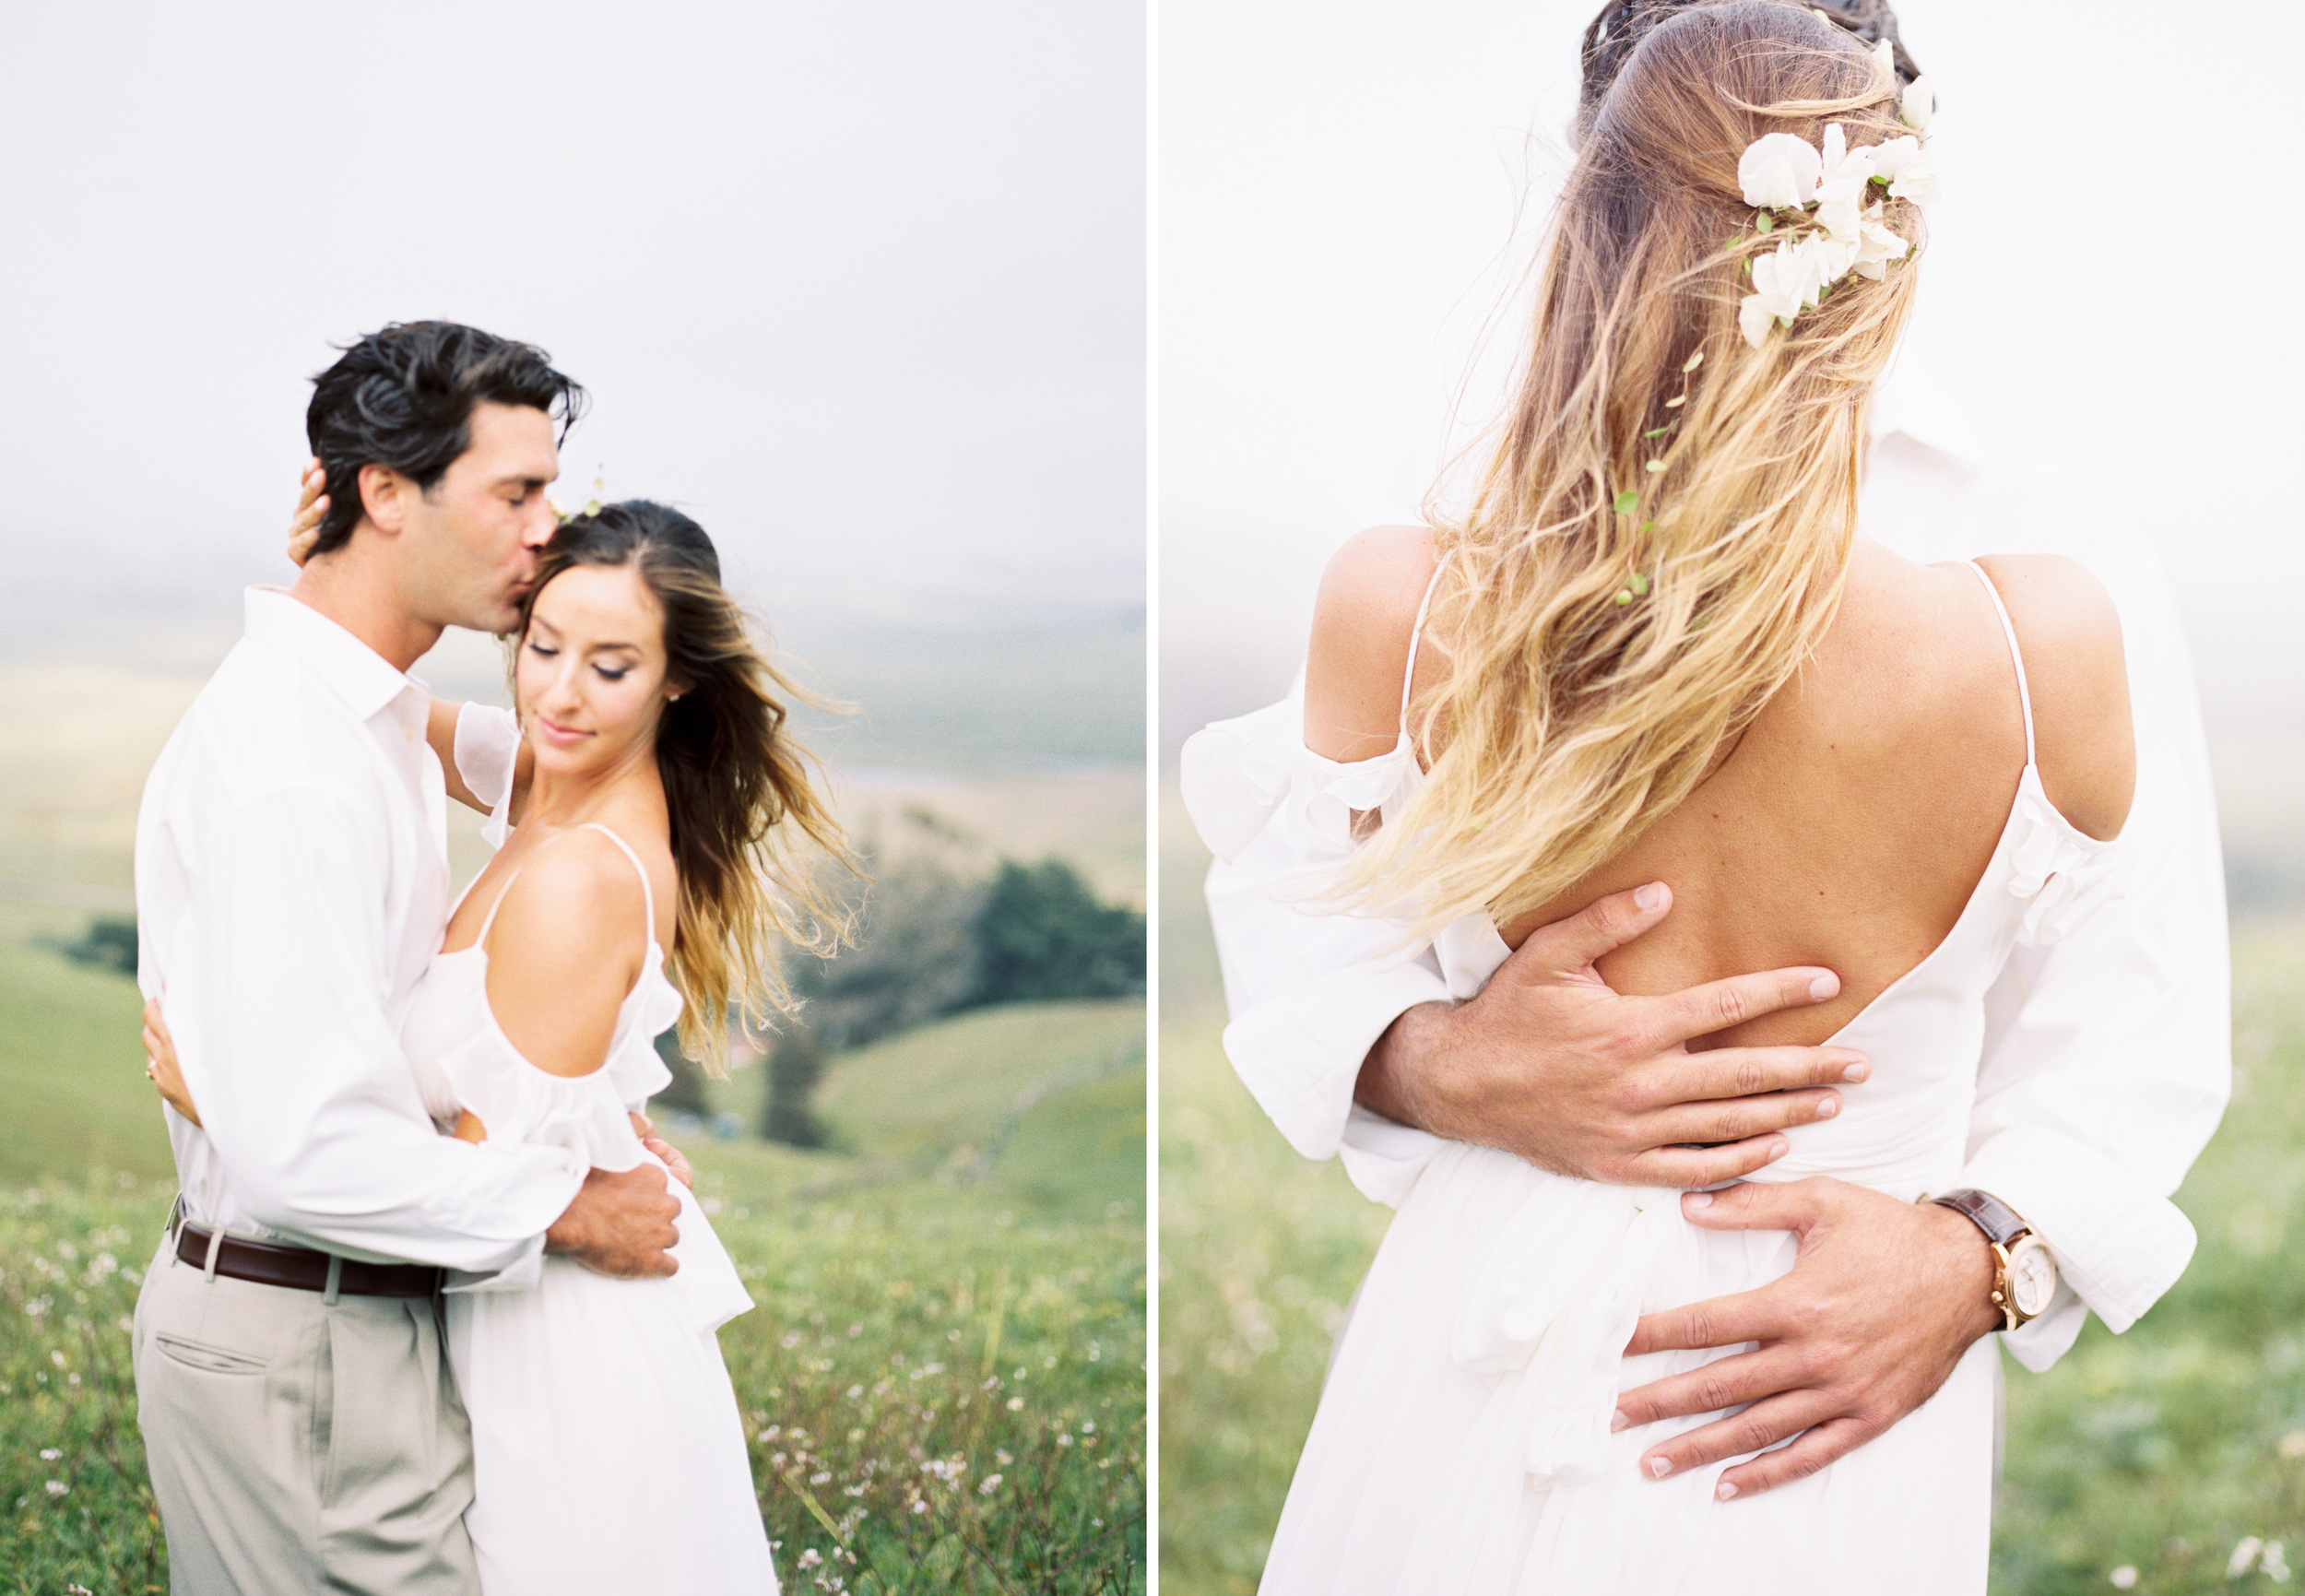 Danford-Photography-Bozeman-Montana-San Francisco-Bay Area-California-Wedding-Elopement-Photographer_3.jpg